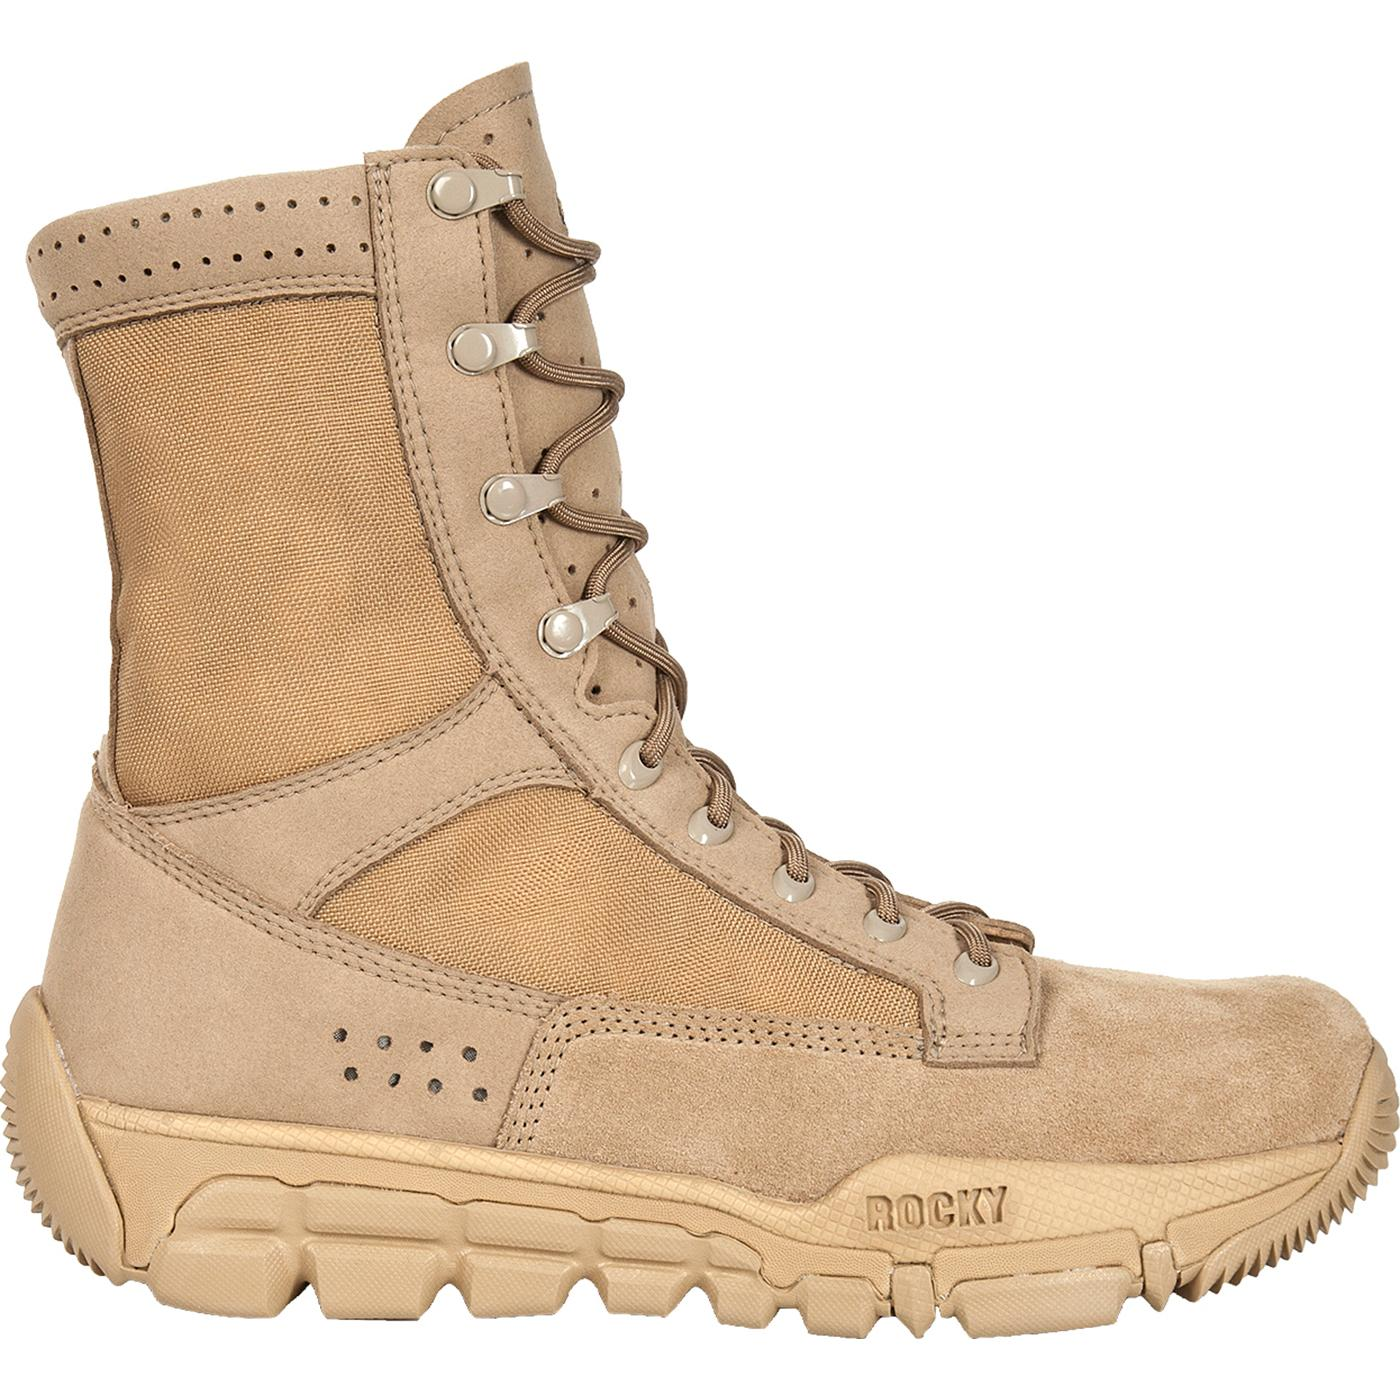 """""""Boots Cost Money"""" Remember the cadence? Boots do cost money of course, you could save and just stick with the Army-issue combat boots. But as we all know, one size does not fit all."""